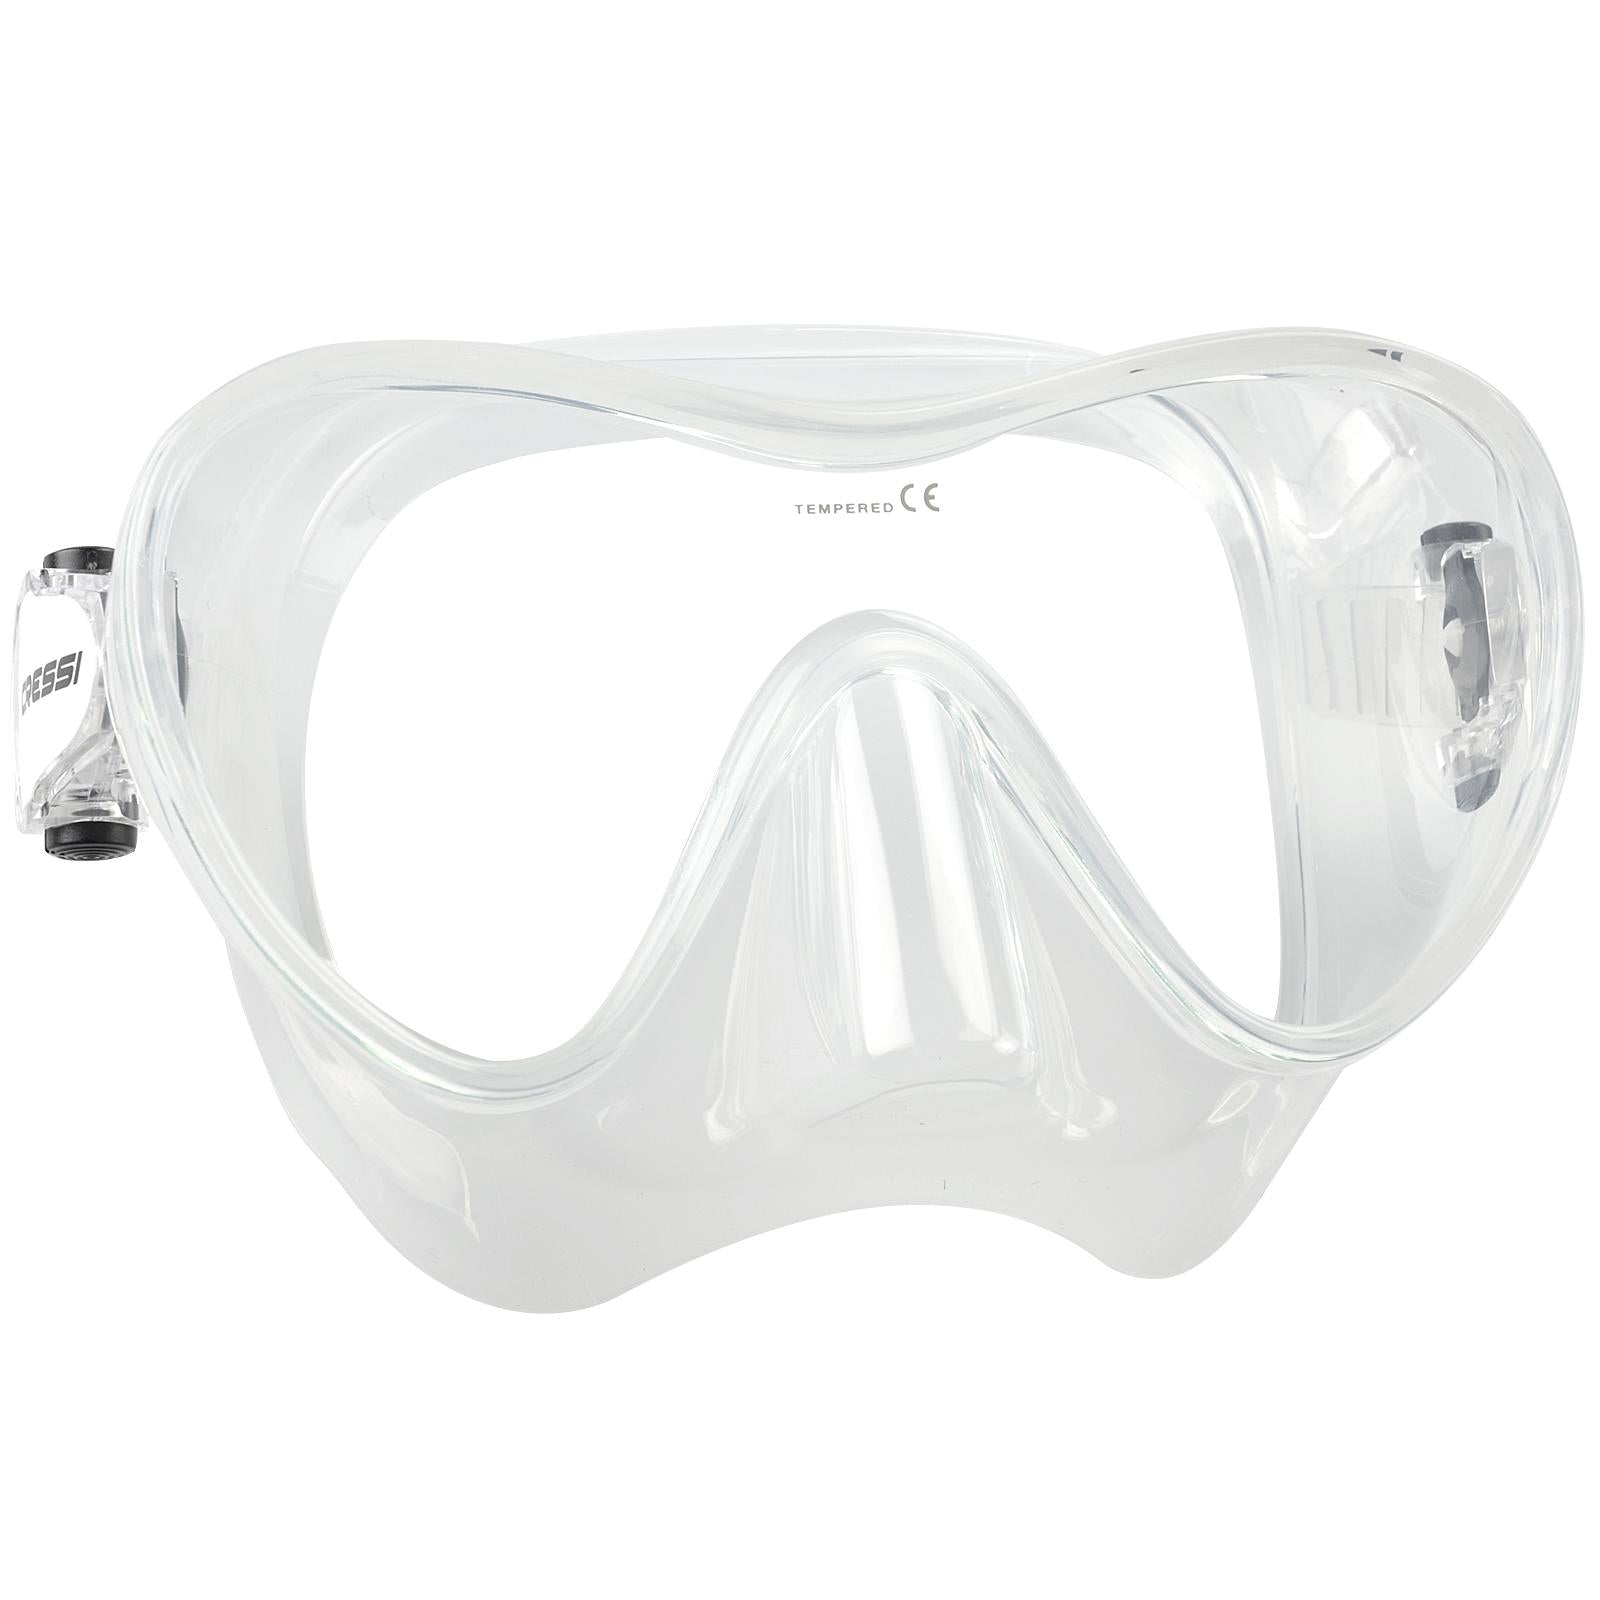 Mares Vento High-Quality Durable Mask and Snorkel Snorkeling Set Blue 411748